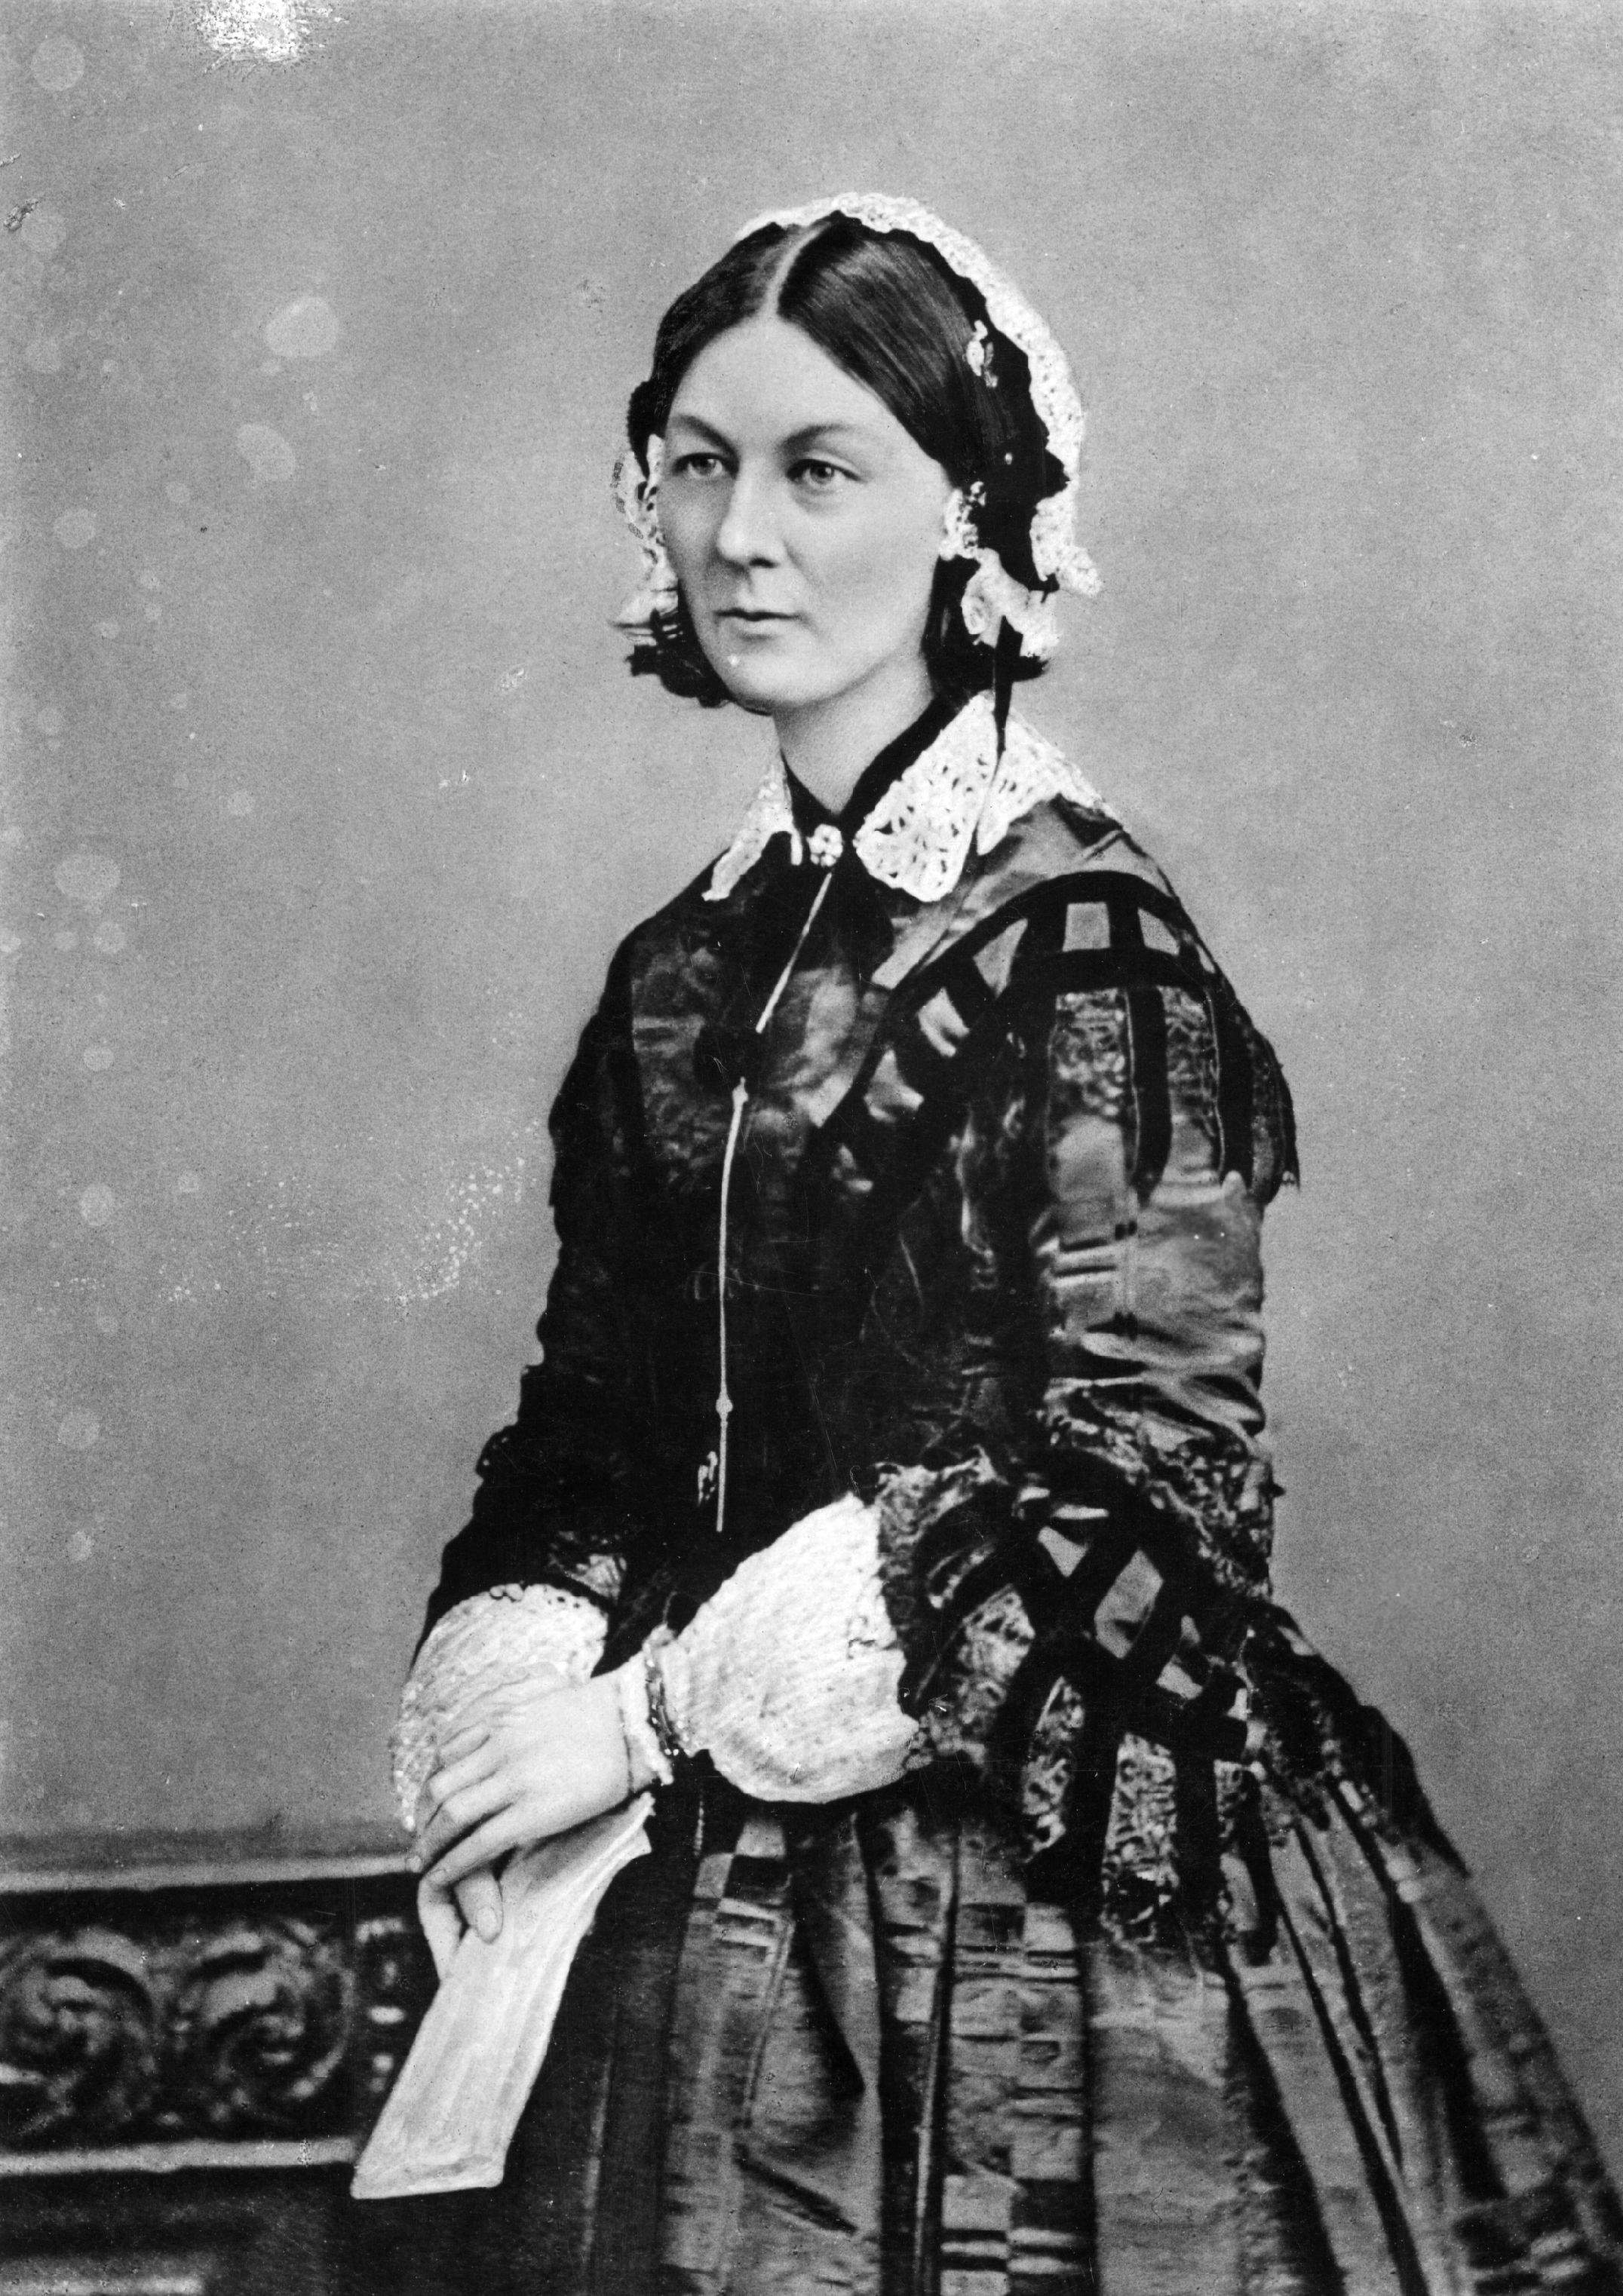 Florence nightingale the lady with the